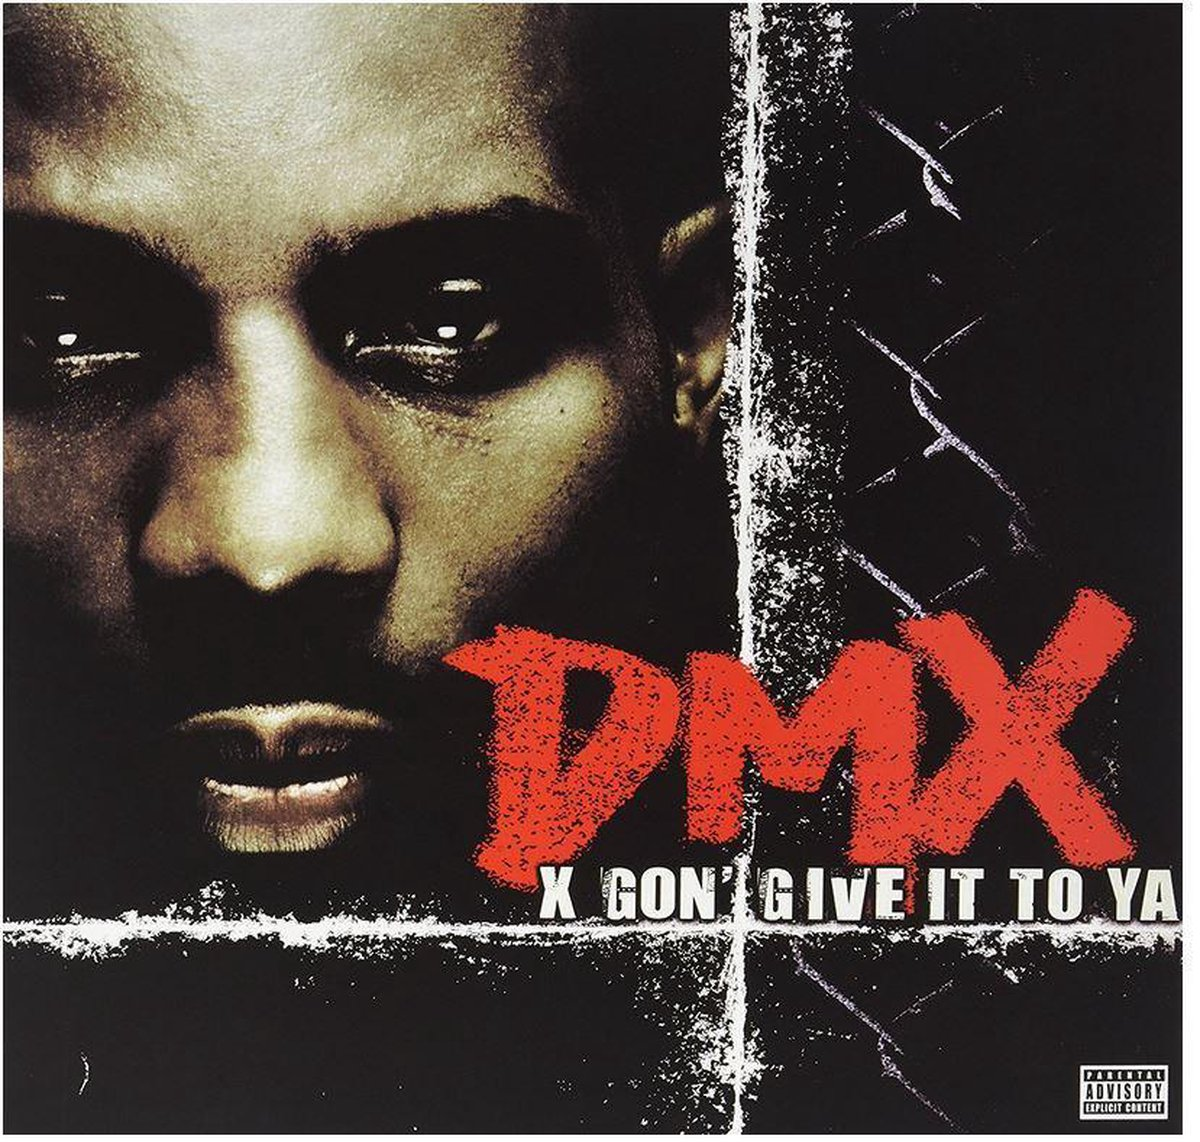 Bol Com X Gon Give It To Ya Dmx Lp Album Muziek